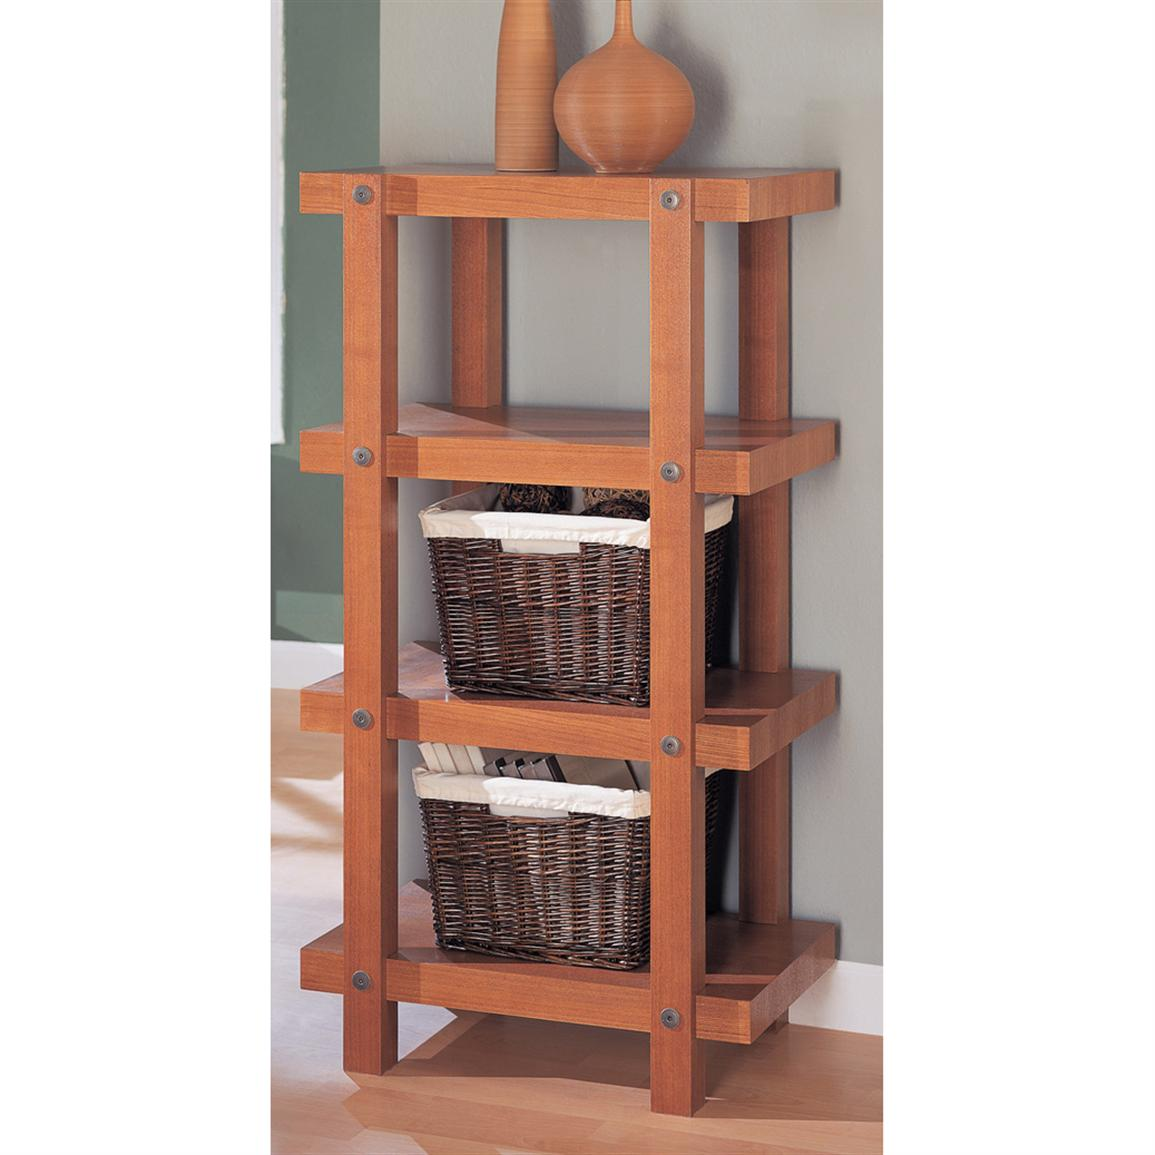 Organize It All Robust 4-Tier Shelf